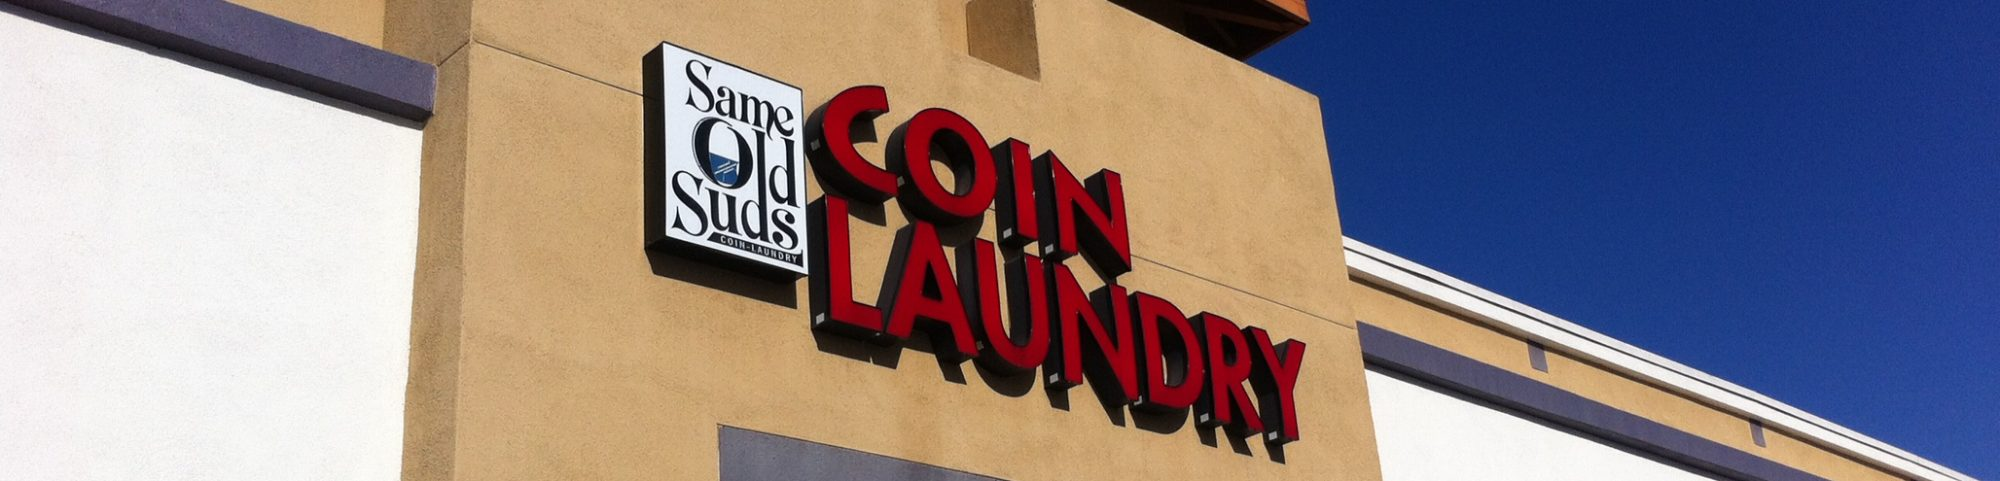 Same Old Suds Coin Laundry